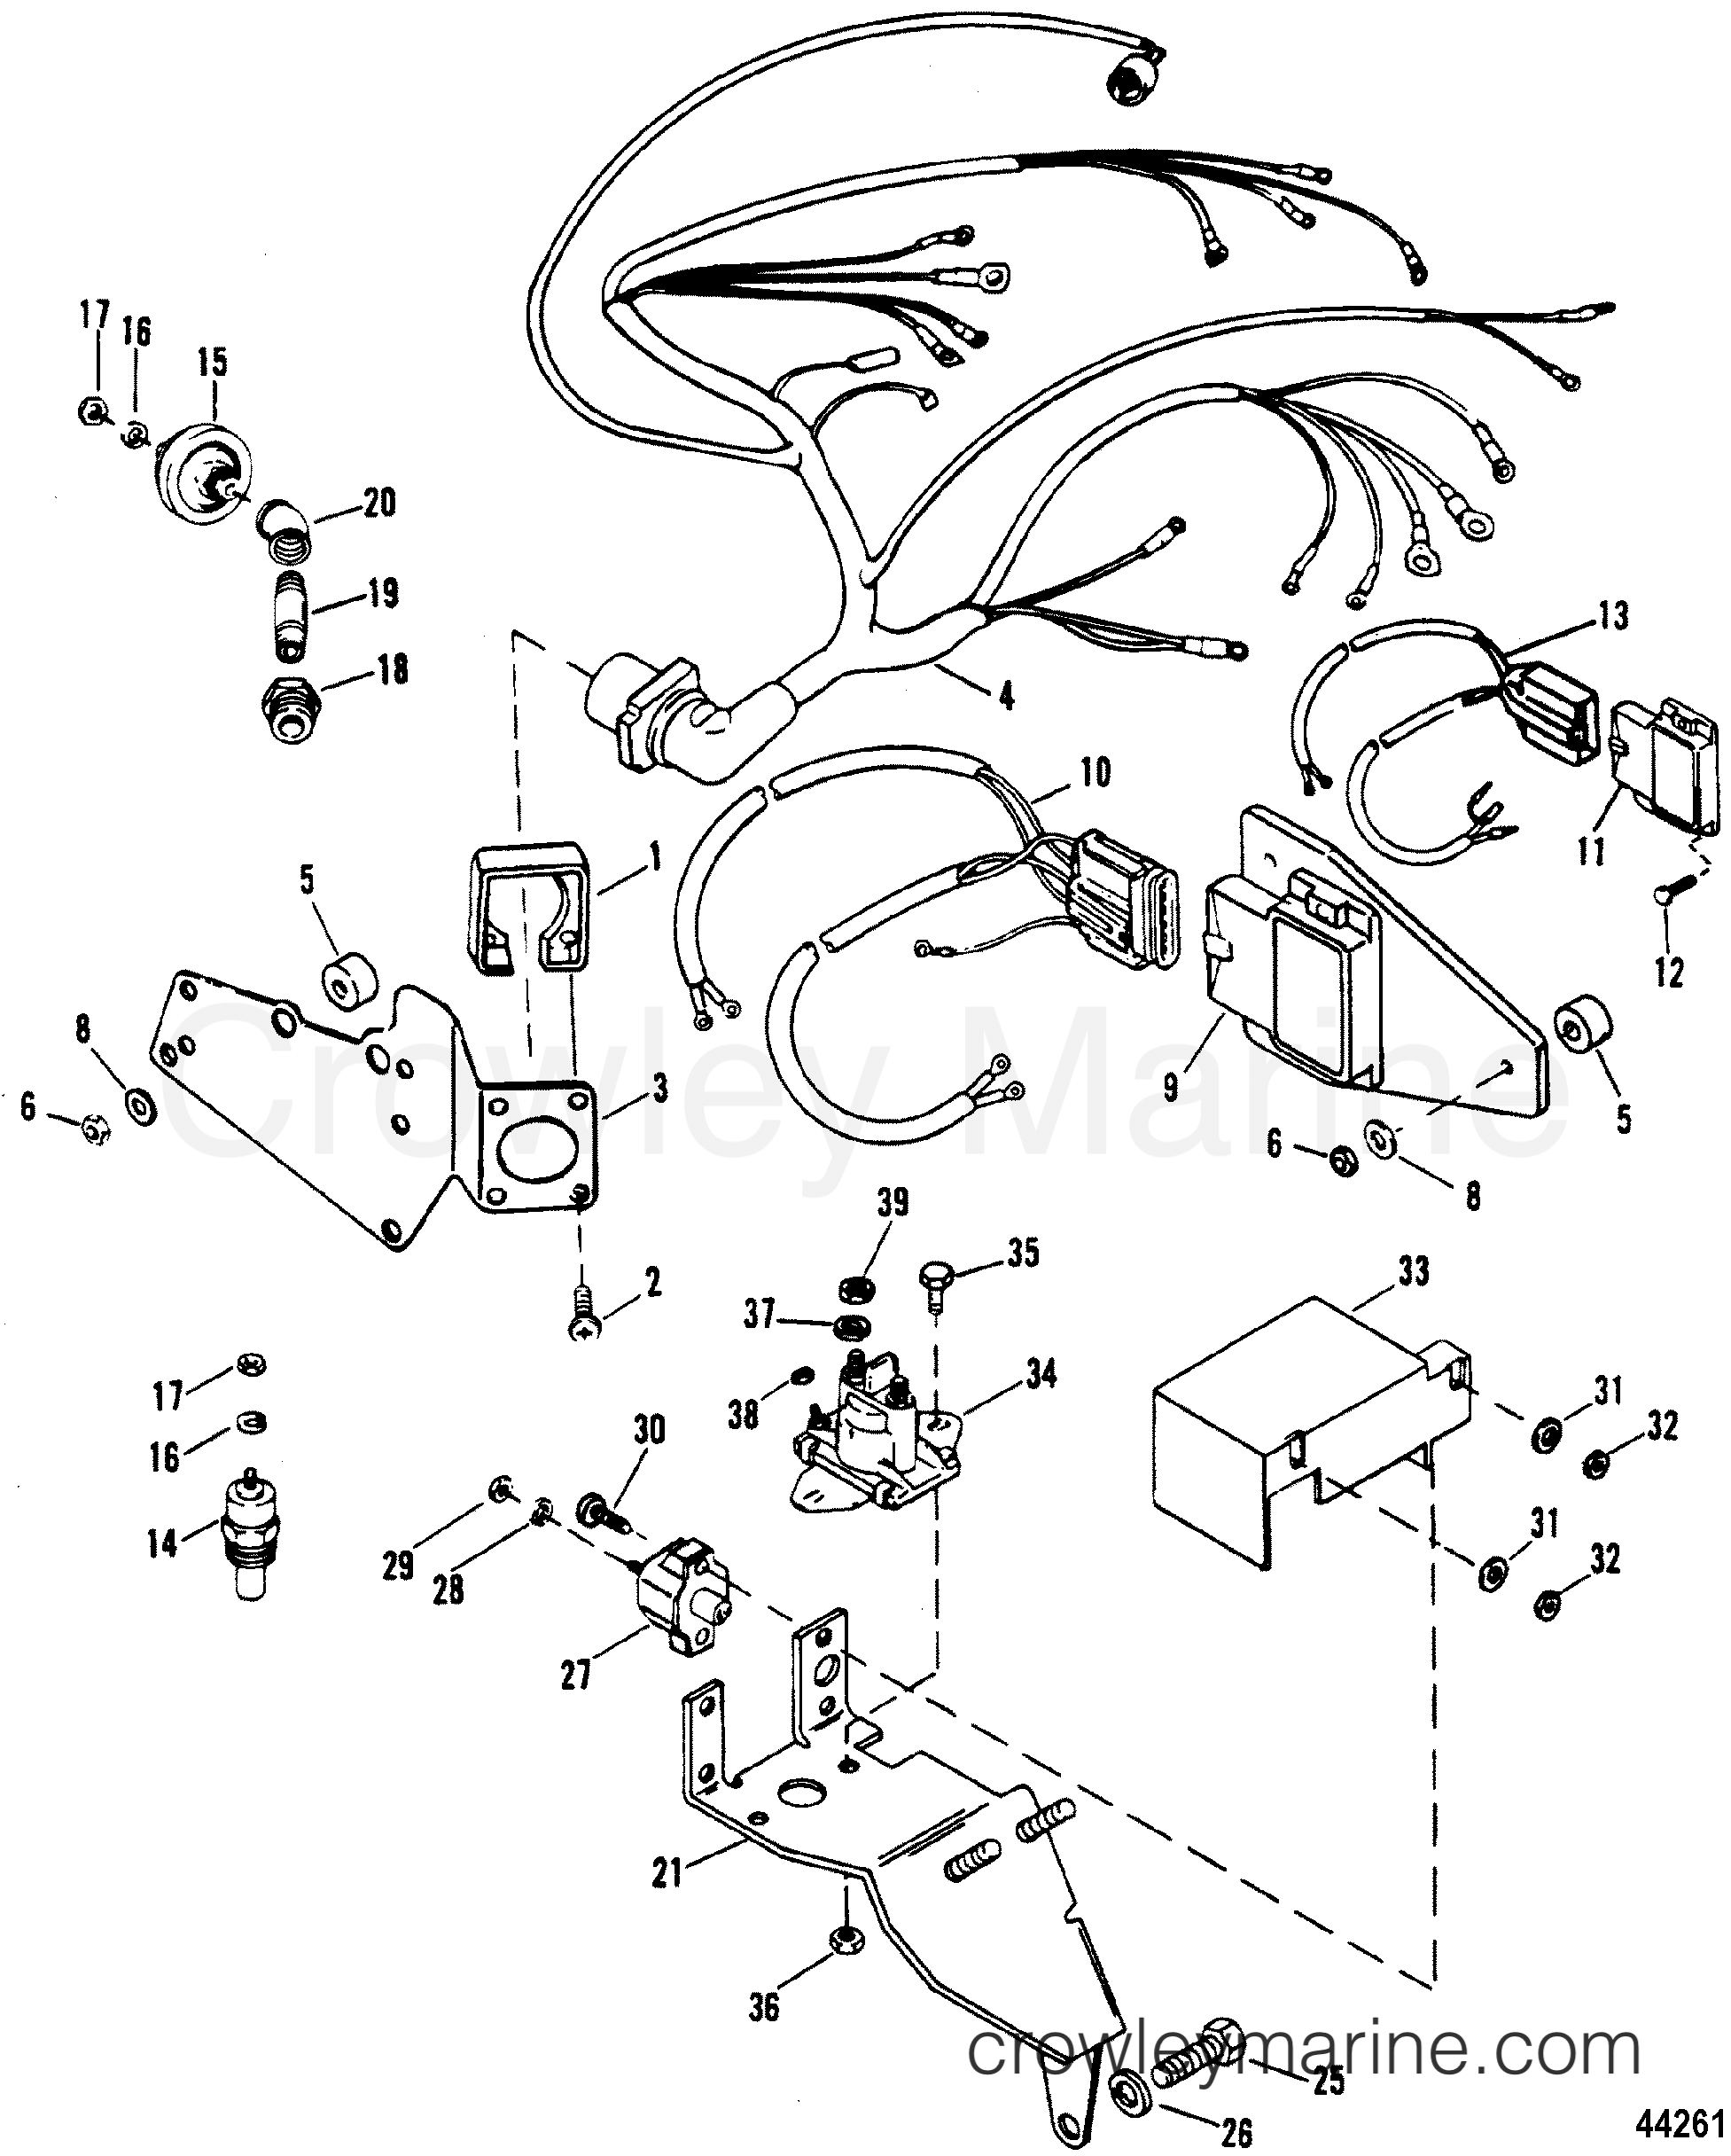 hight resolution of 1992 mercury inboard engine 7 4l 37412212s wiring harness electrical components thunderbolt